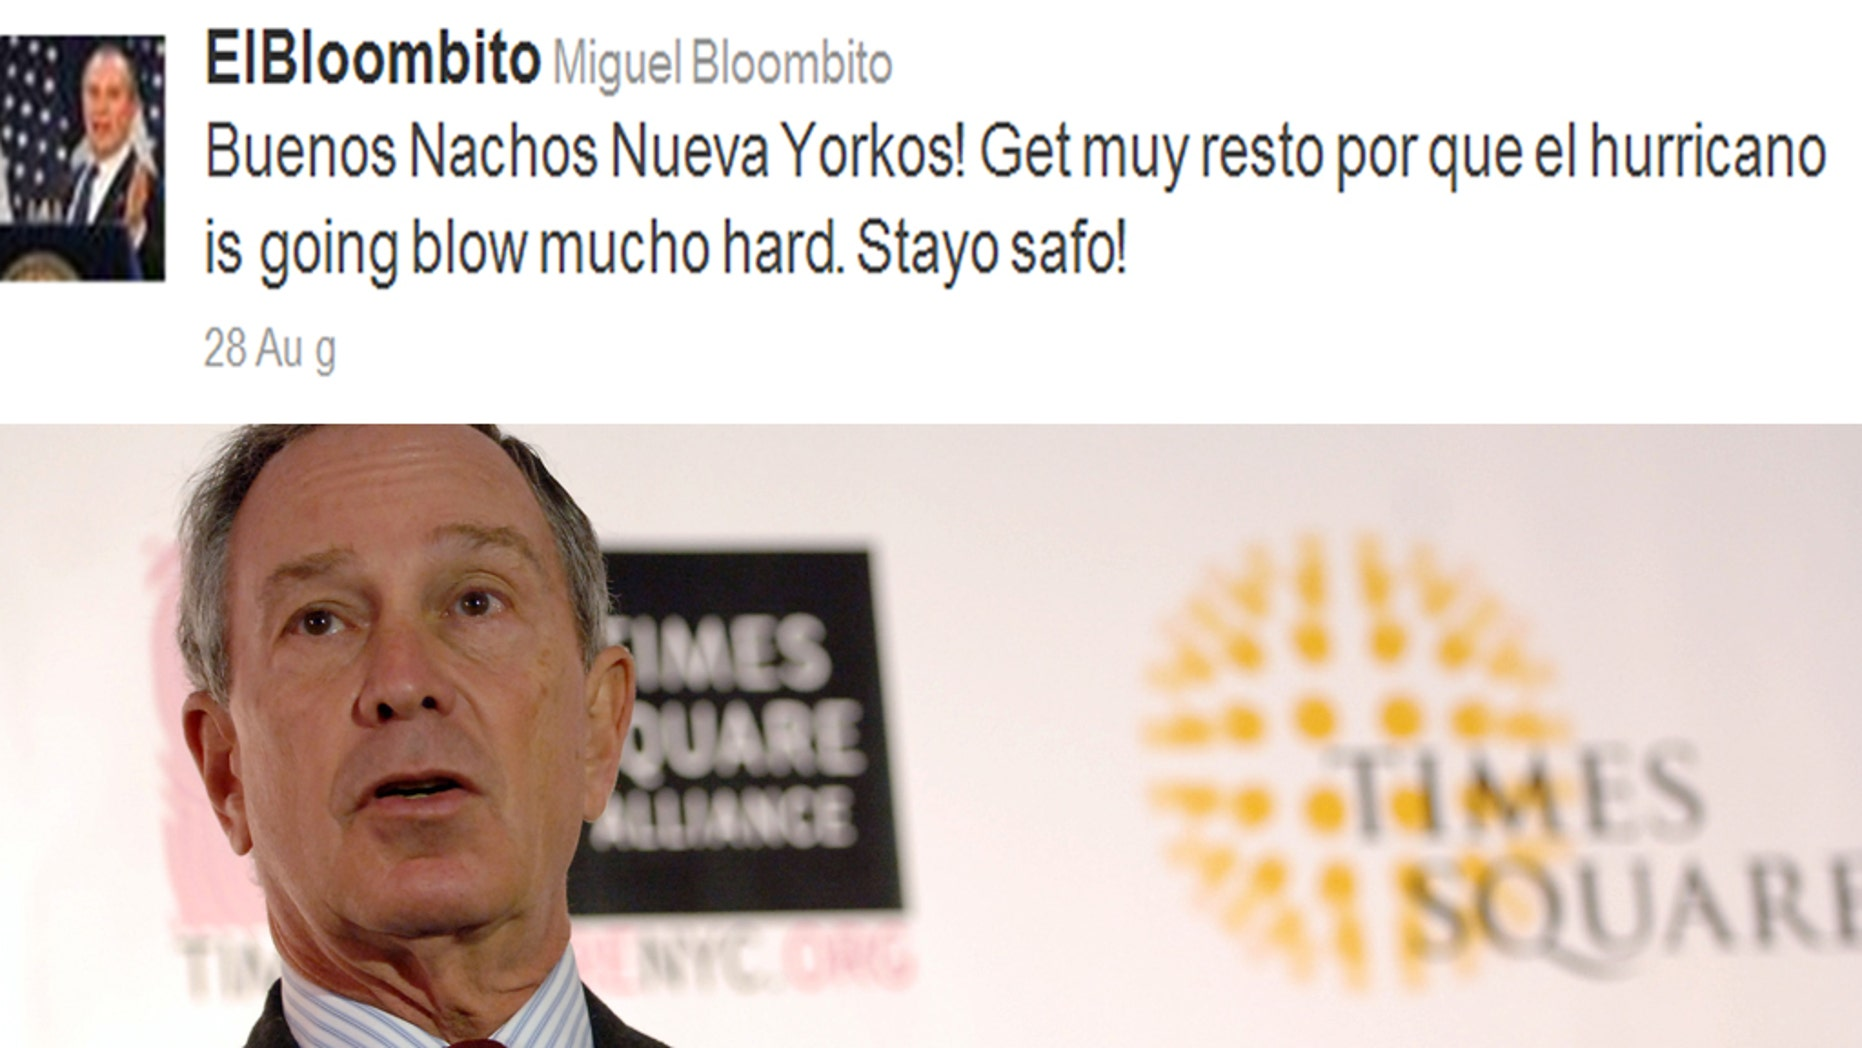 A twitter feed, @elbloombito, was launched poking fun at Michael Bloomberg's very earnest yet somewhat grating attempt at speaking Español.